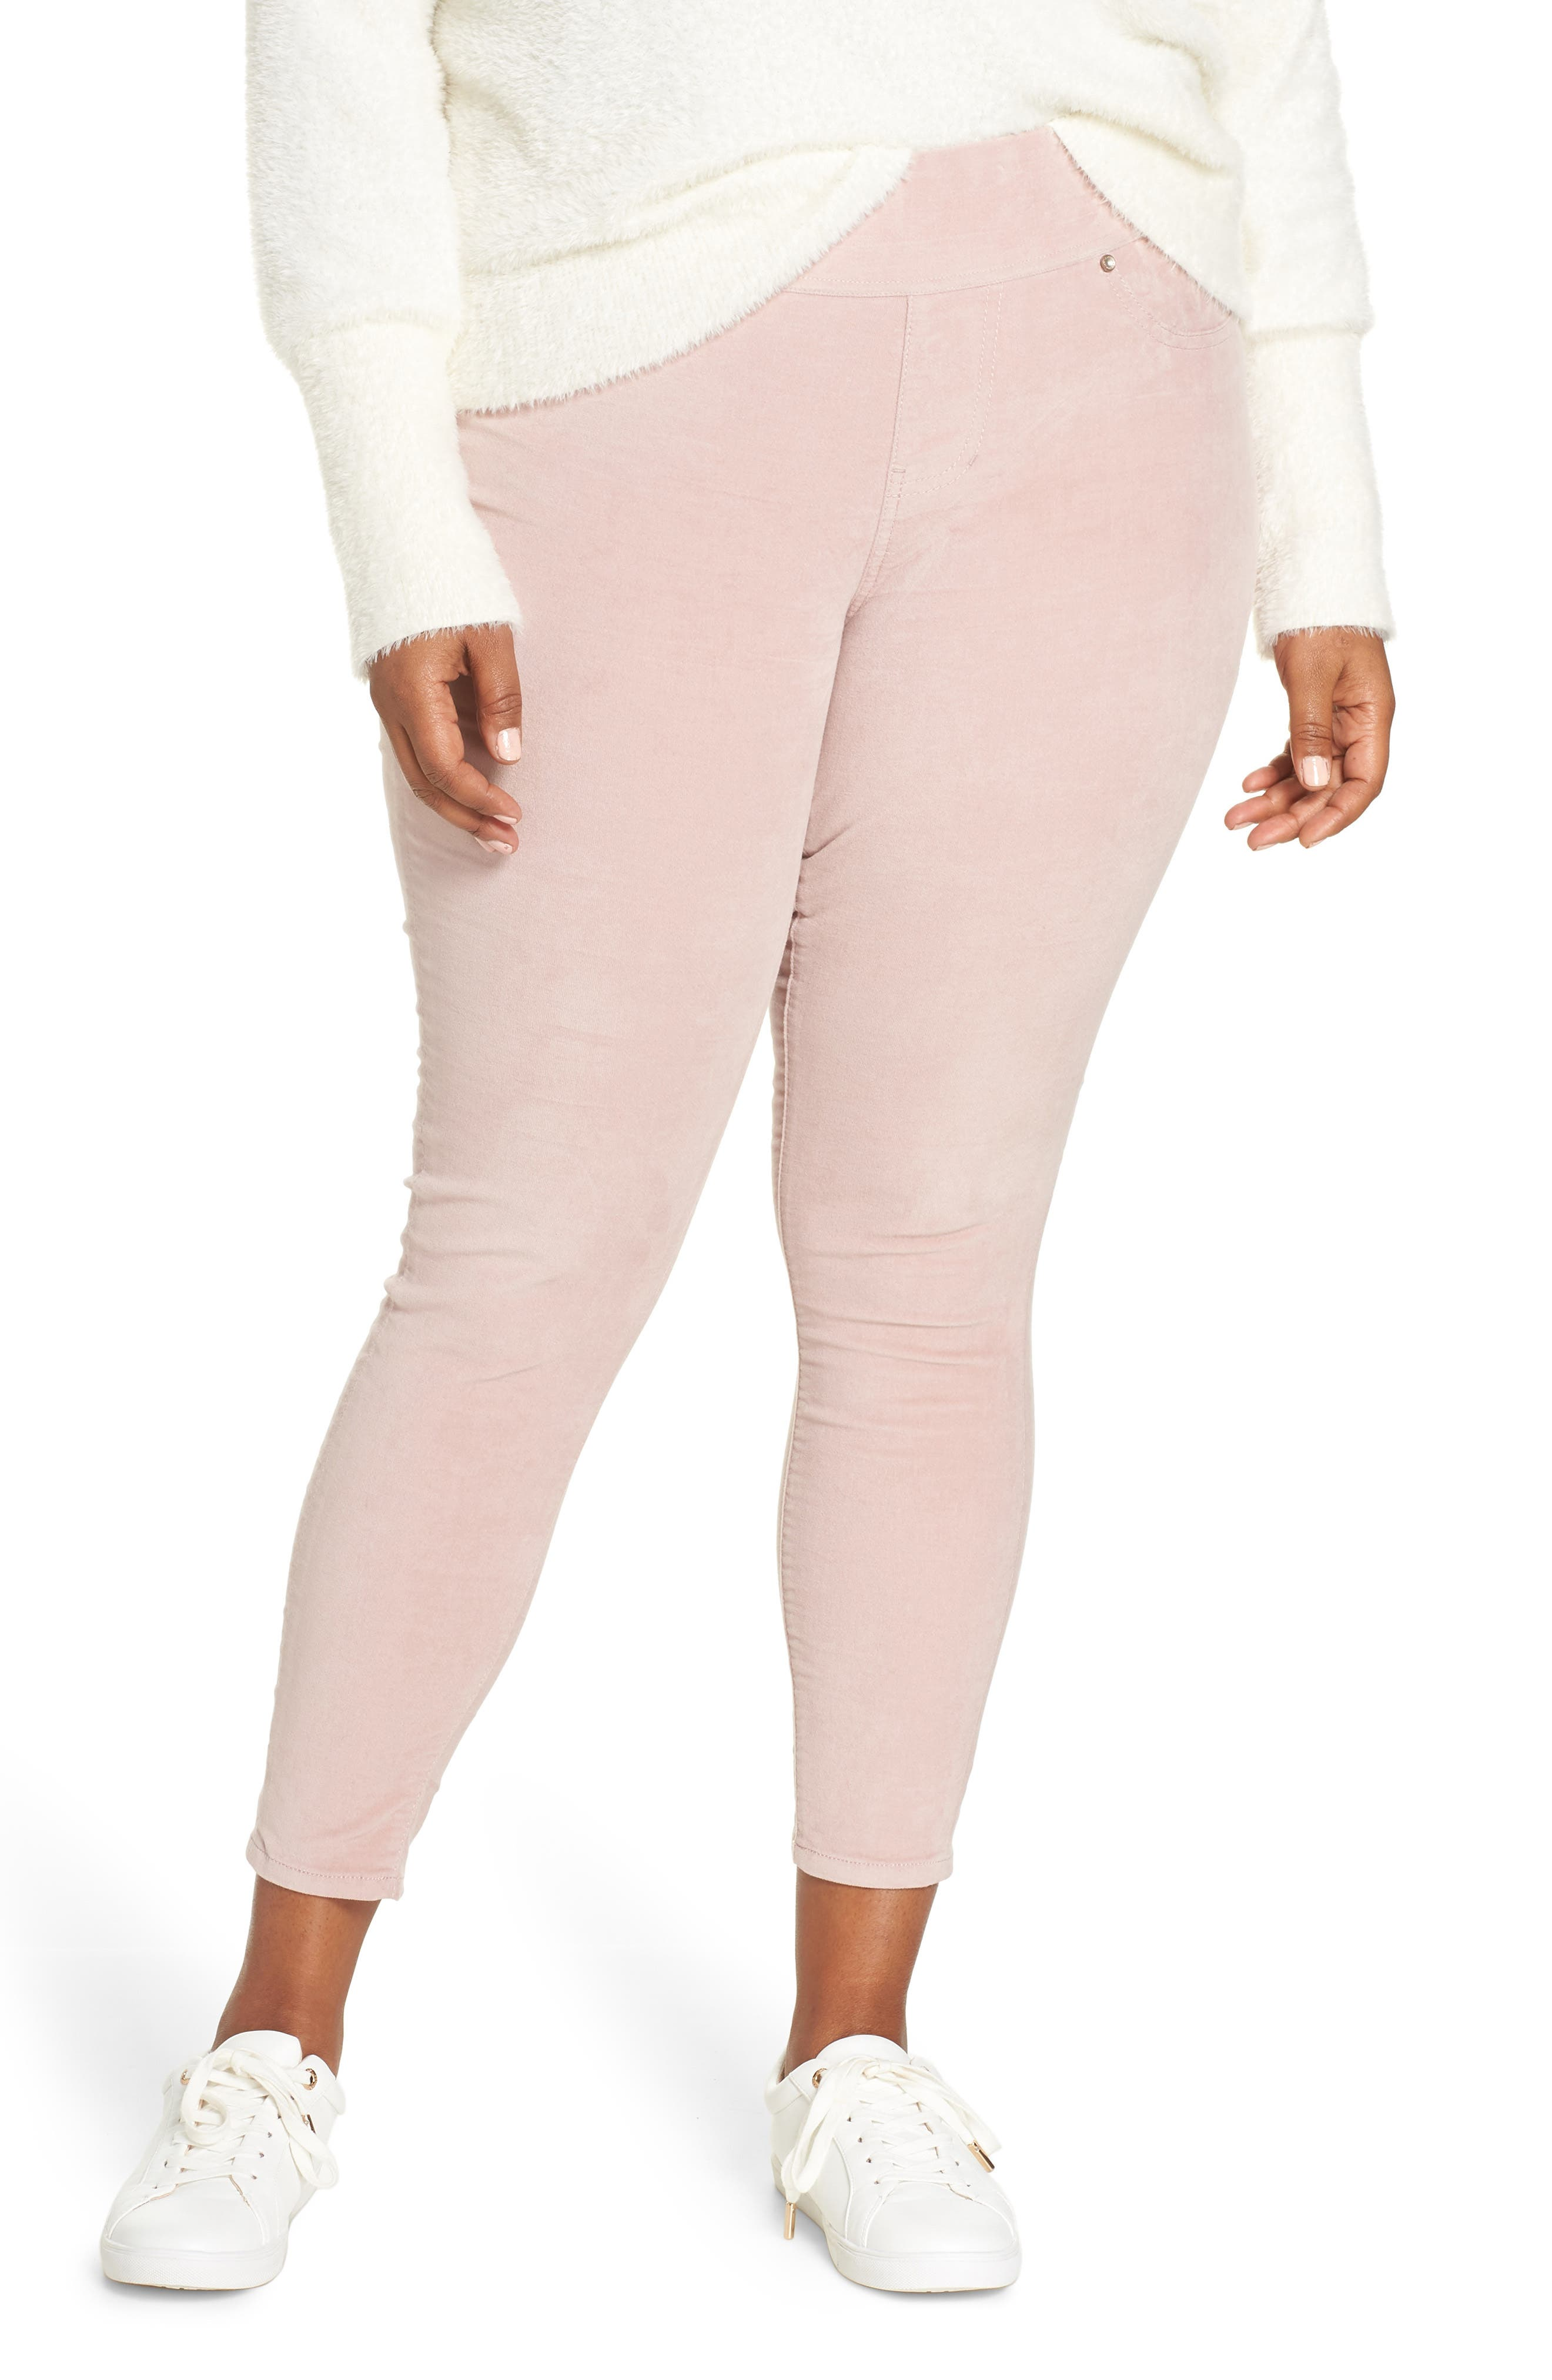 Plus Size Jag Jeans Marla Stretch Denim Leggings, Pink